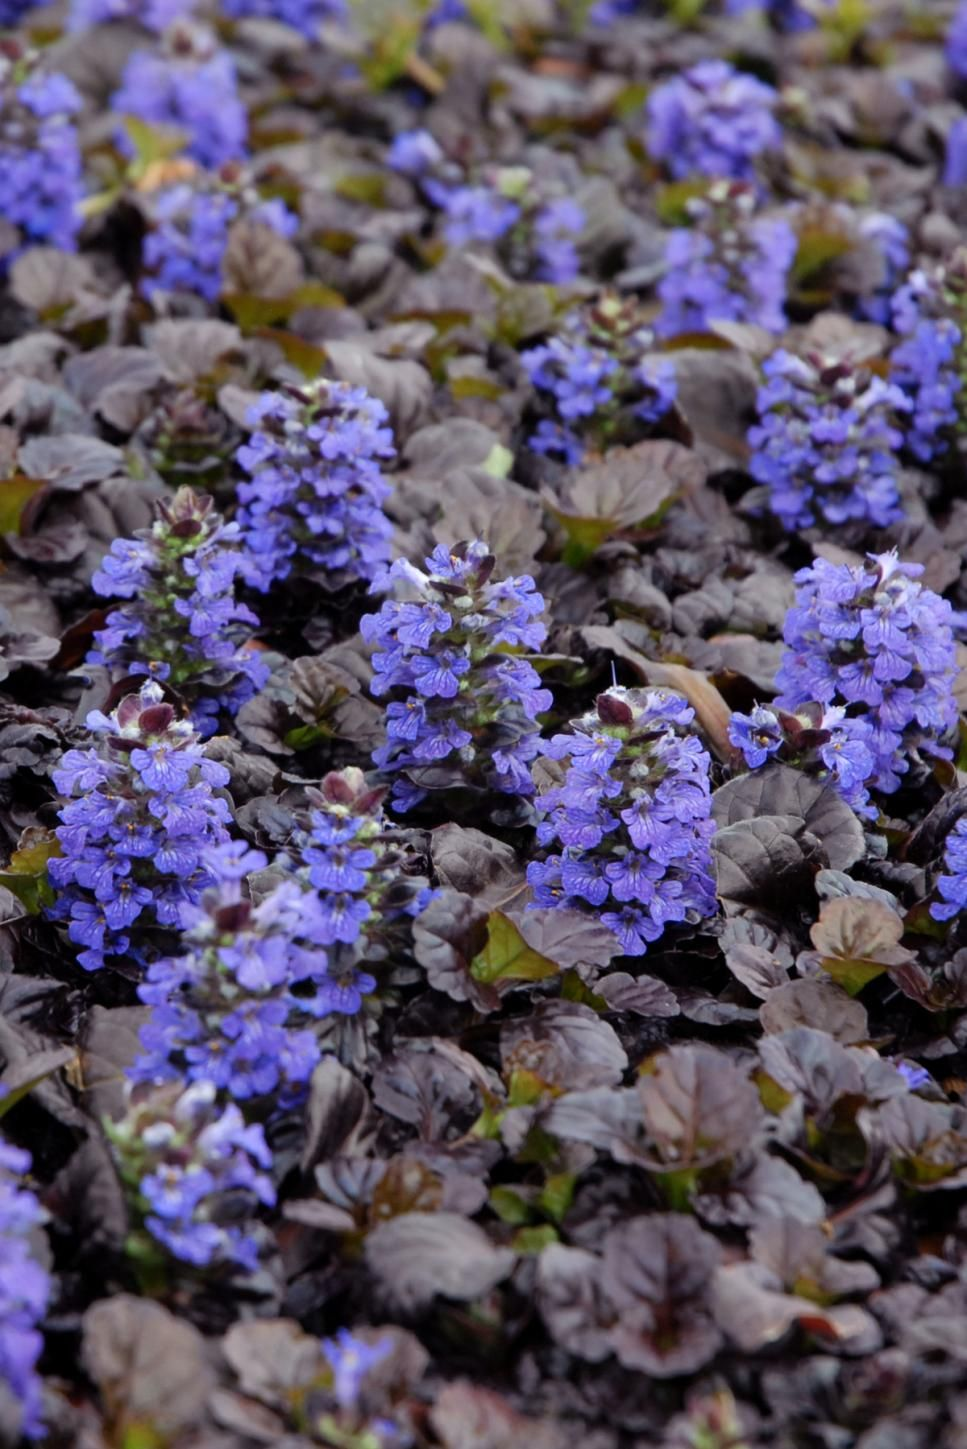 Perennial flowers for shade gardens shade perennials pinterest black scallop bugleweed ajuga dense groundcover topped with pretty purple blue flower spikes in spring zones 4 10 full shade to full sun izmirmasajfo